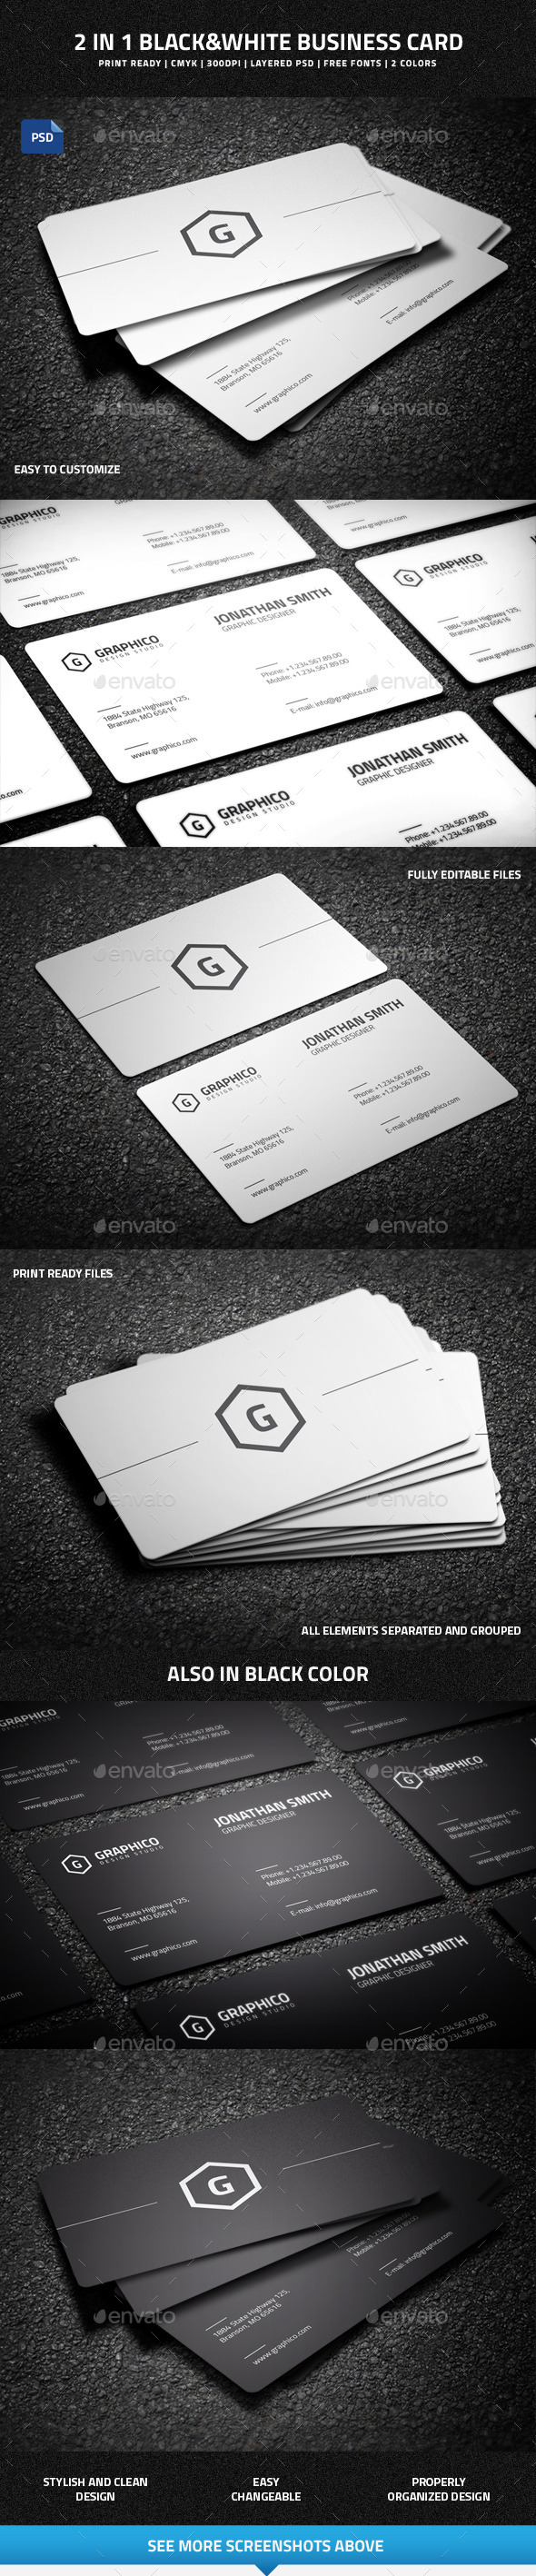 2 in 1 Black & White Business Card - 50 - Creative Business Cards